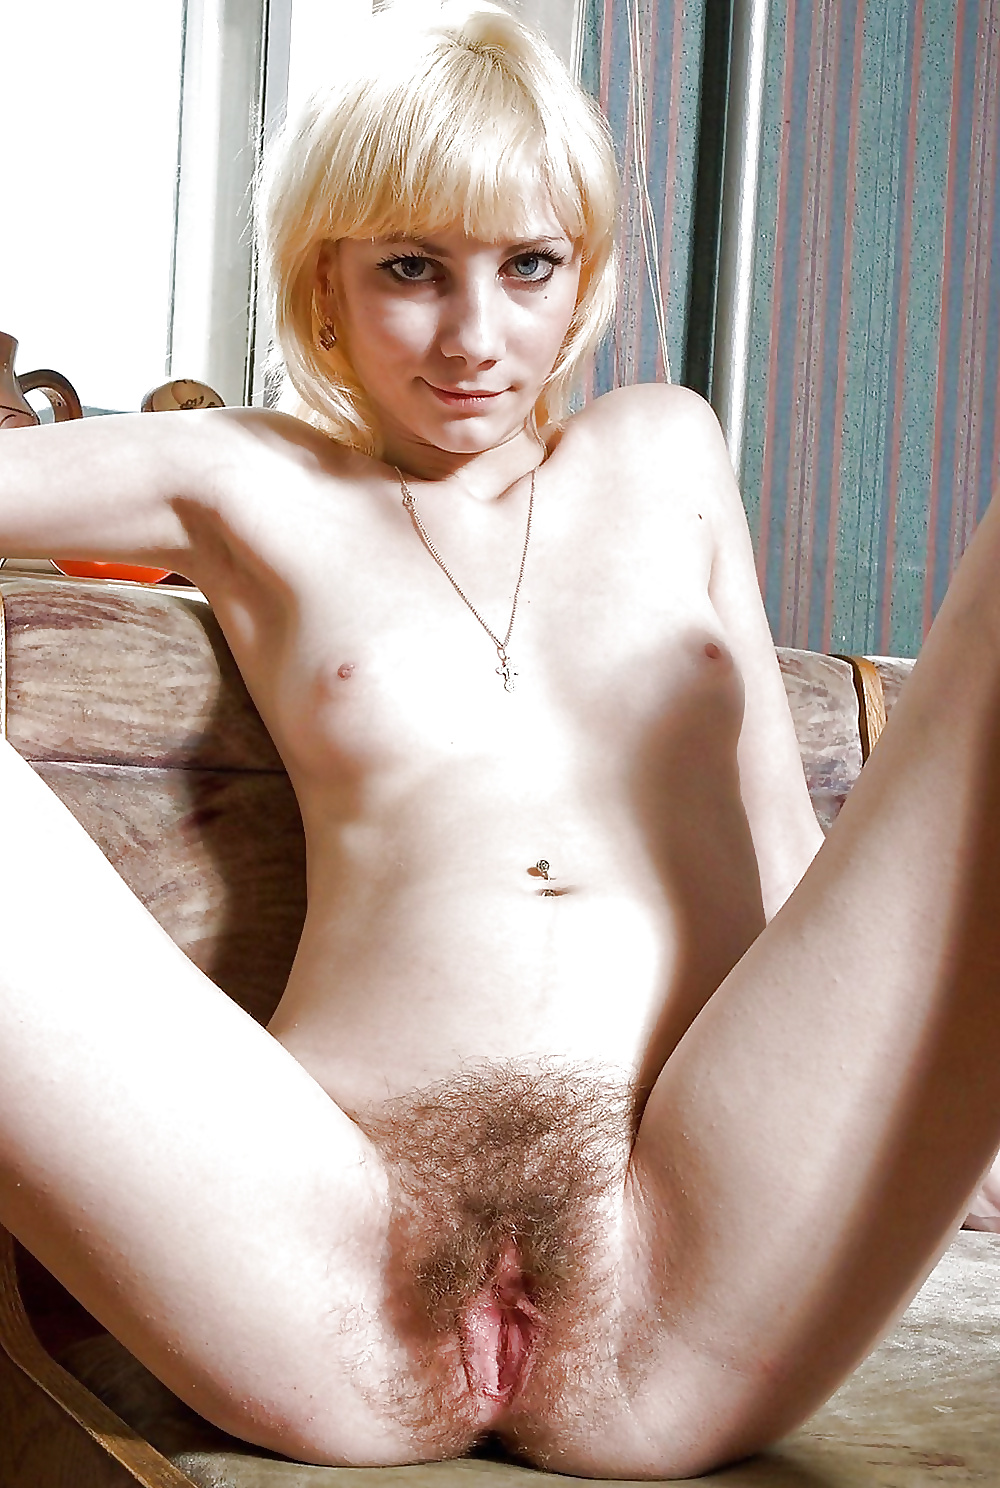 Pretty Tomboys Natural And Hairy - 20 Pics - Xhamstercom-6246